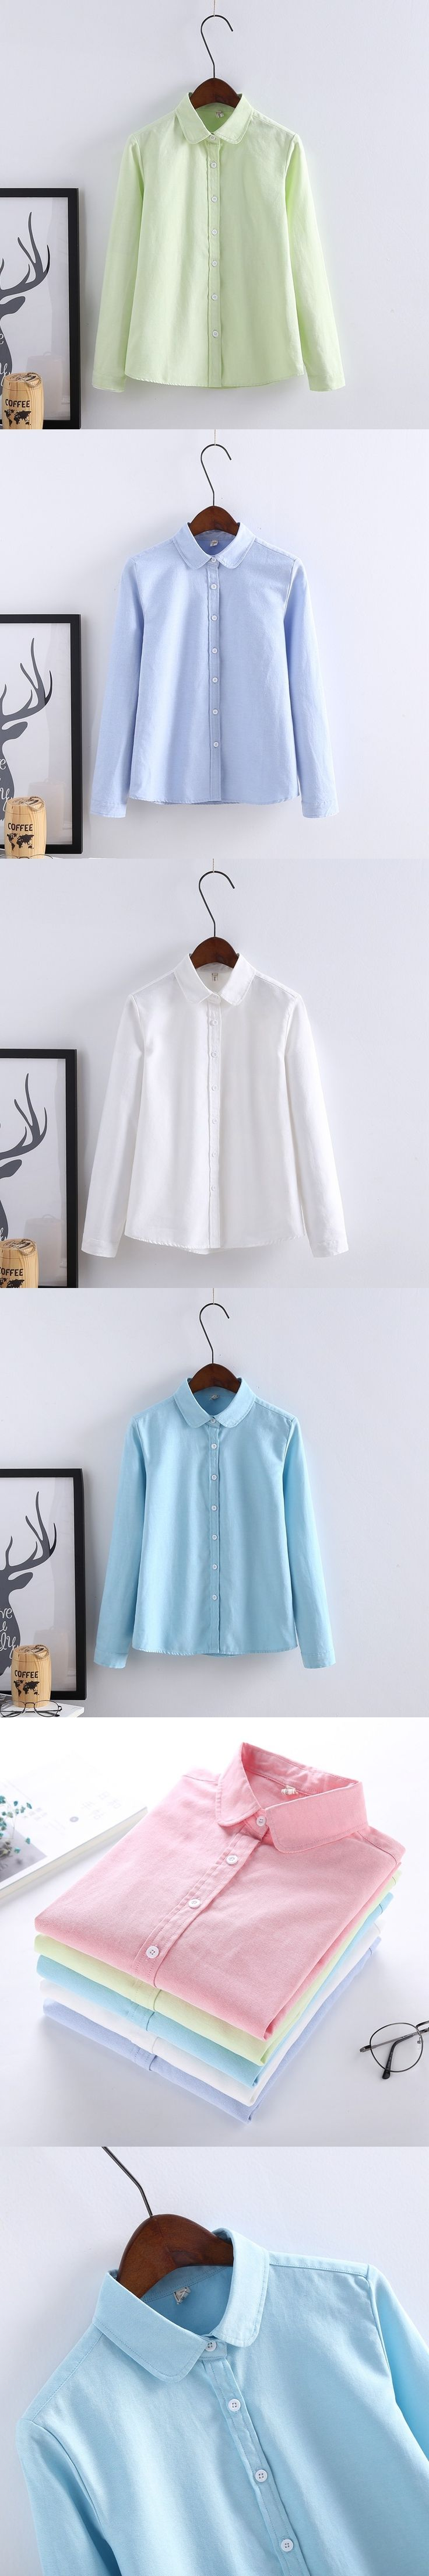 Women Blouse 2017 New Casual BRAND Long Sleeved Cotton Oxford White Shirt Woman Office Shirts Excellent Quality Blusas Lady